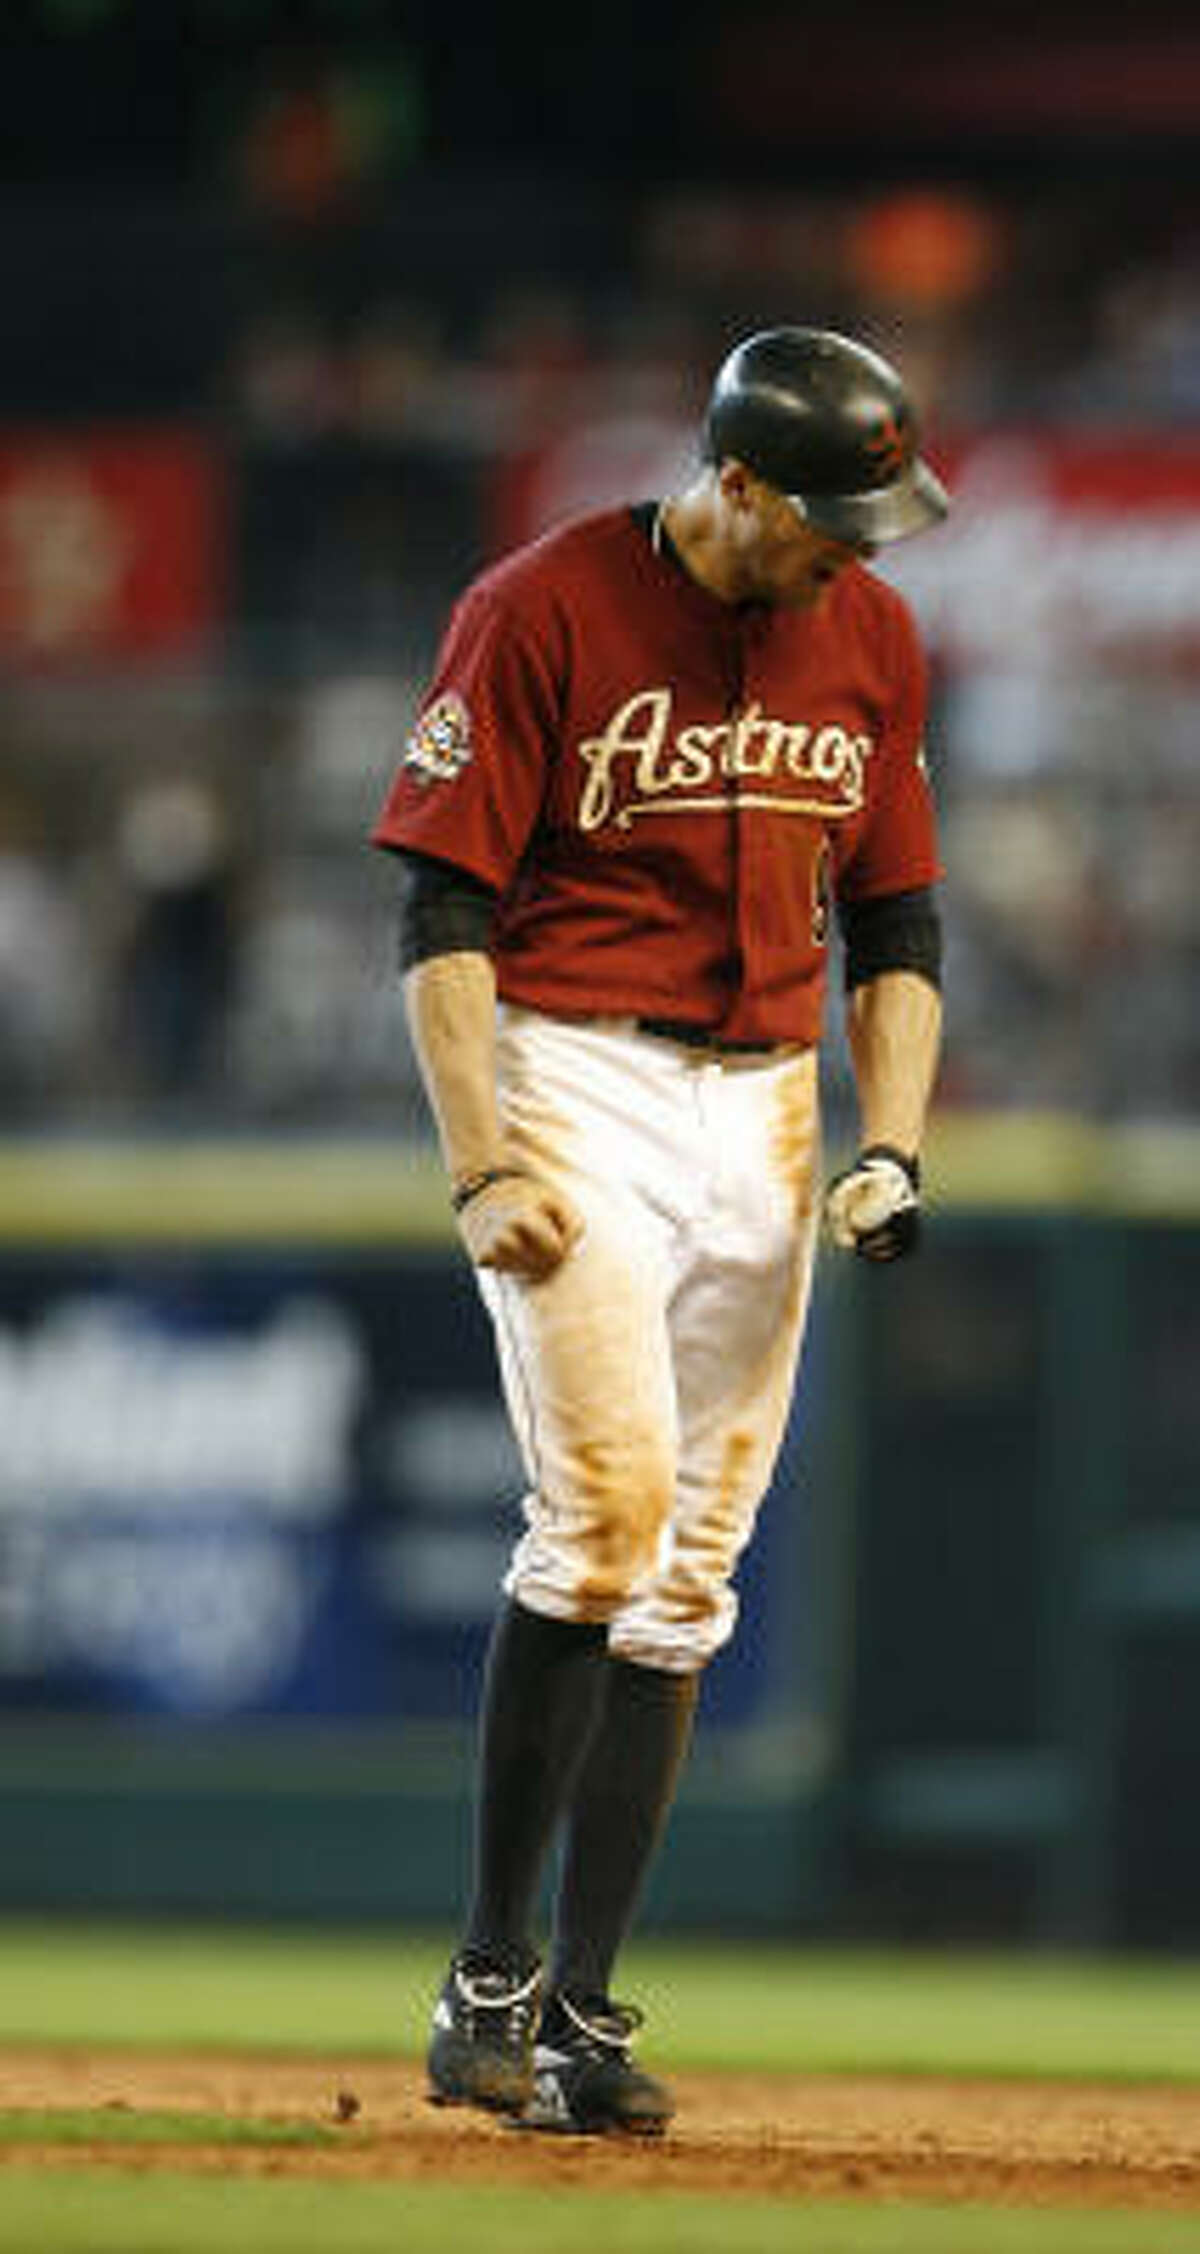 Hunter Pence shows his frustration after flying out to end the game.